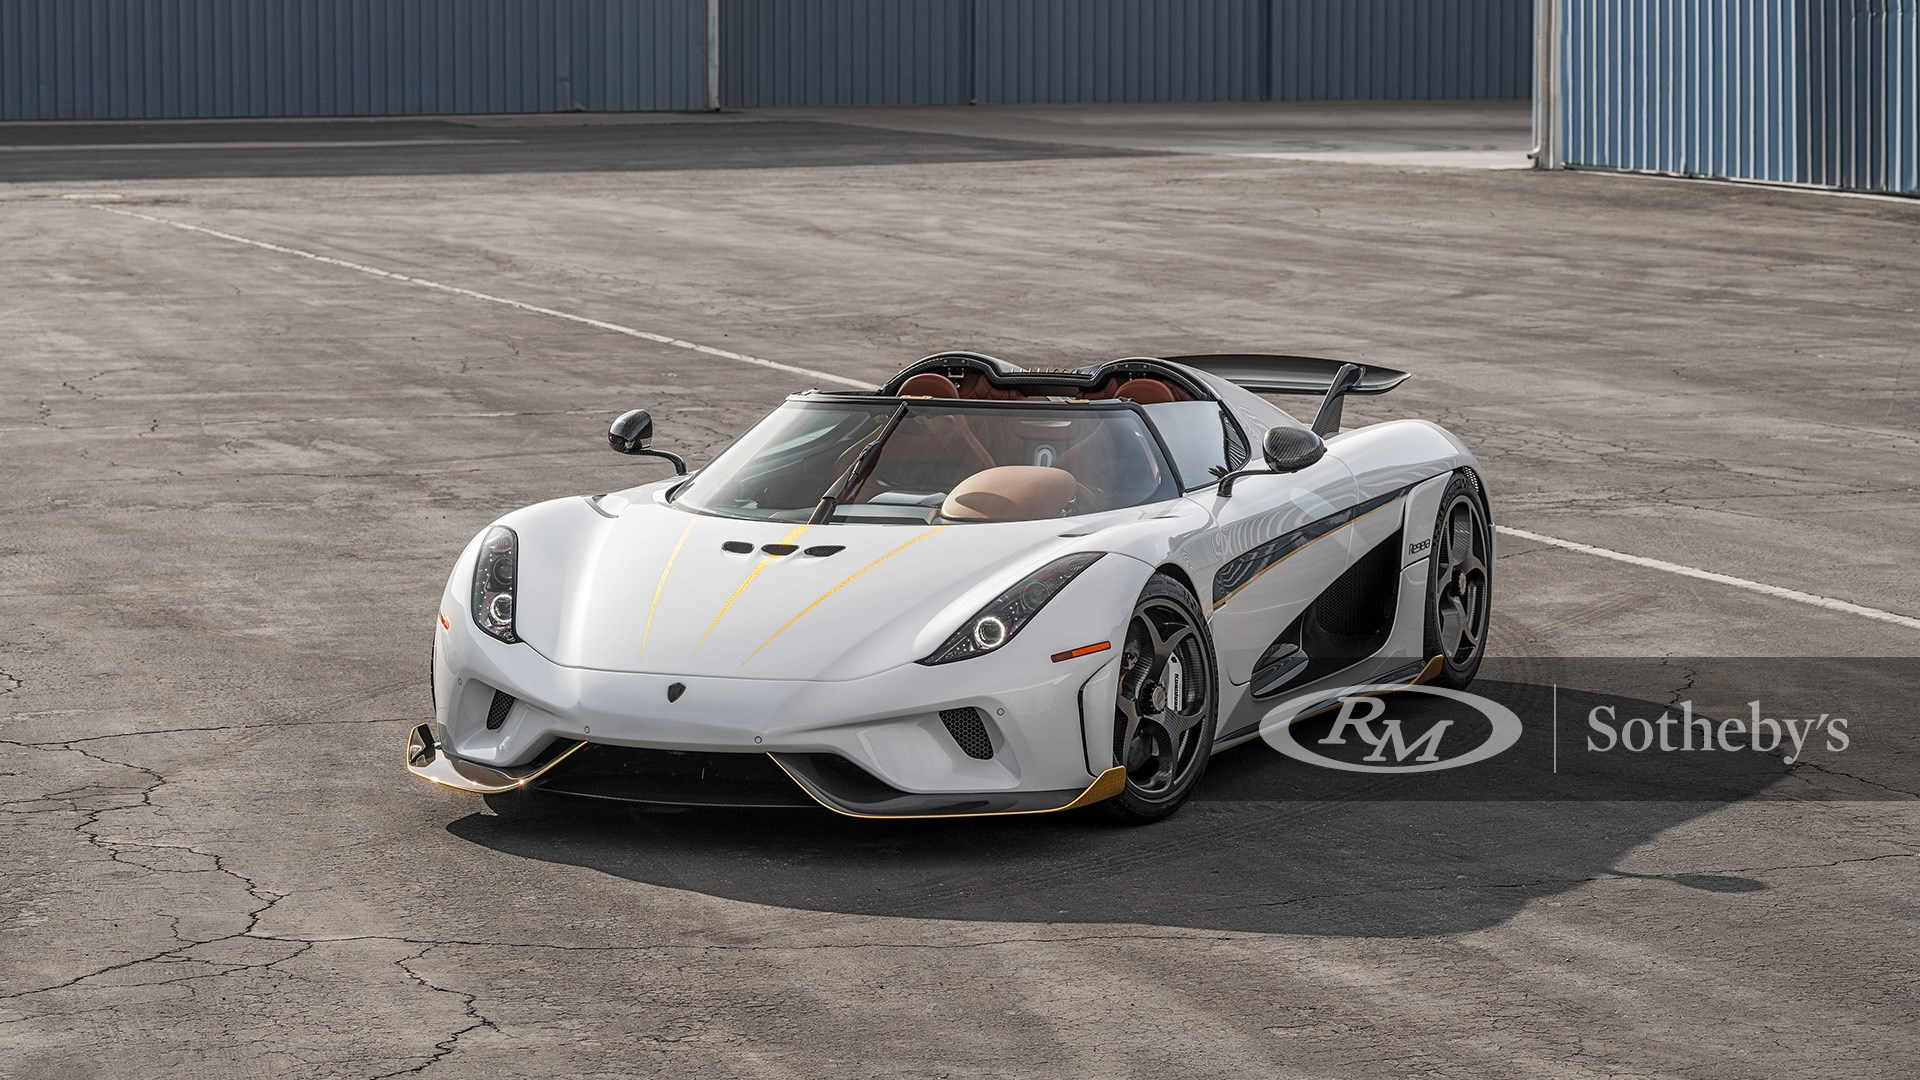 Crystal White/Clear Carbon 2019 Koenigsegg Regera available at RM Sotheby's Arizona Live Auction 2021